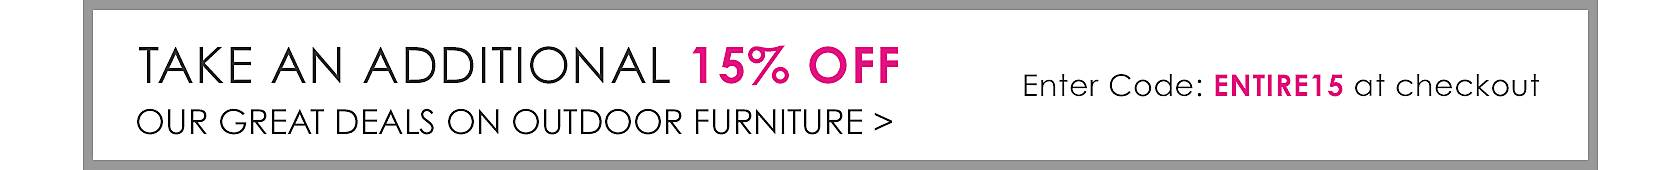 All Art NOW 20% OFF + Save An Additional 15% - Shop now